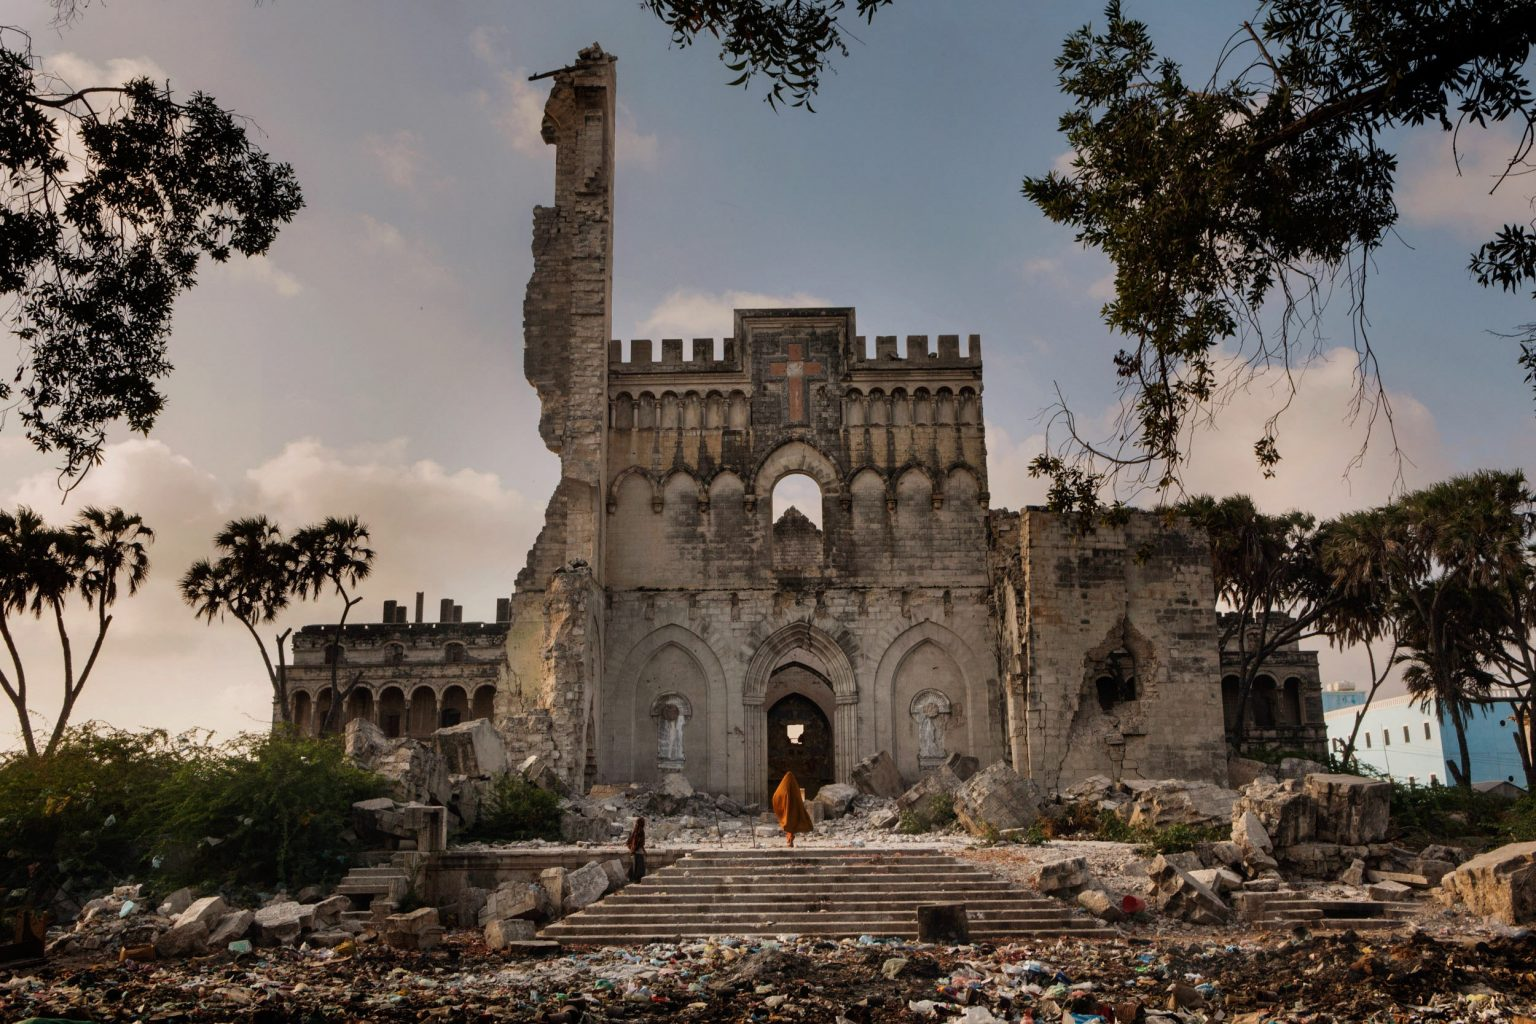 Africa, Somalia, Benadir region, Mogadishu. 26/03/2012. The Catholic cathedral, located between Hamarweyne and Shangani districts, the old town of the Somali capital. In fact, Hamarweyne literally means the big city or old town